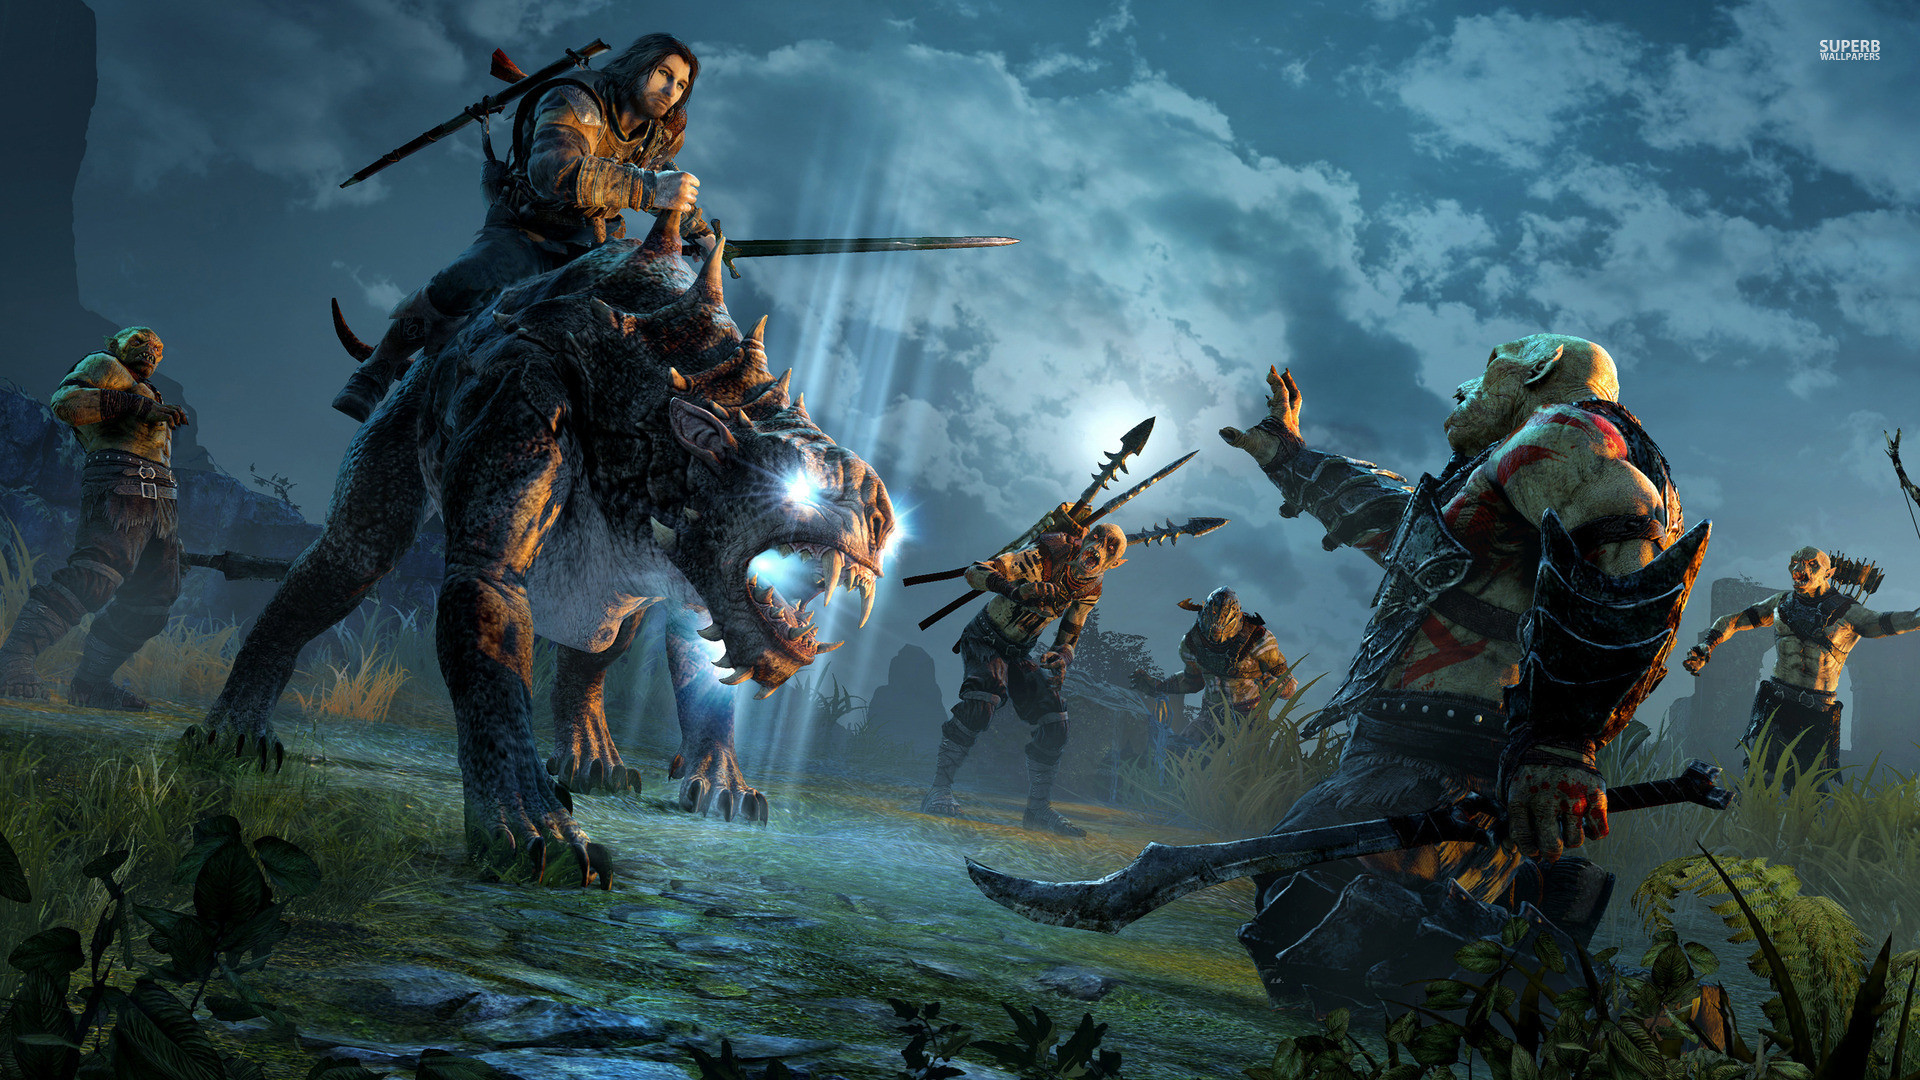 Game Wallpapers 1366x768 (74+ images)